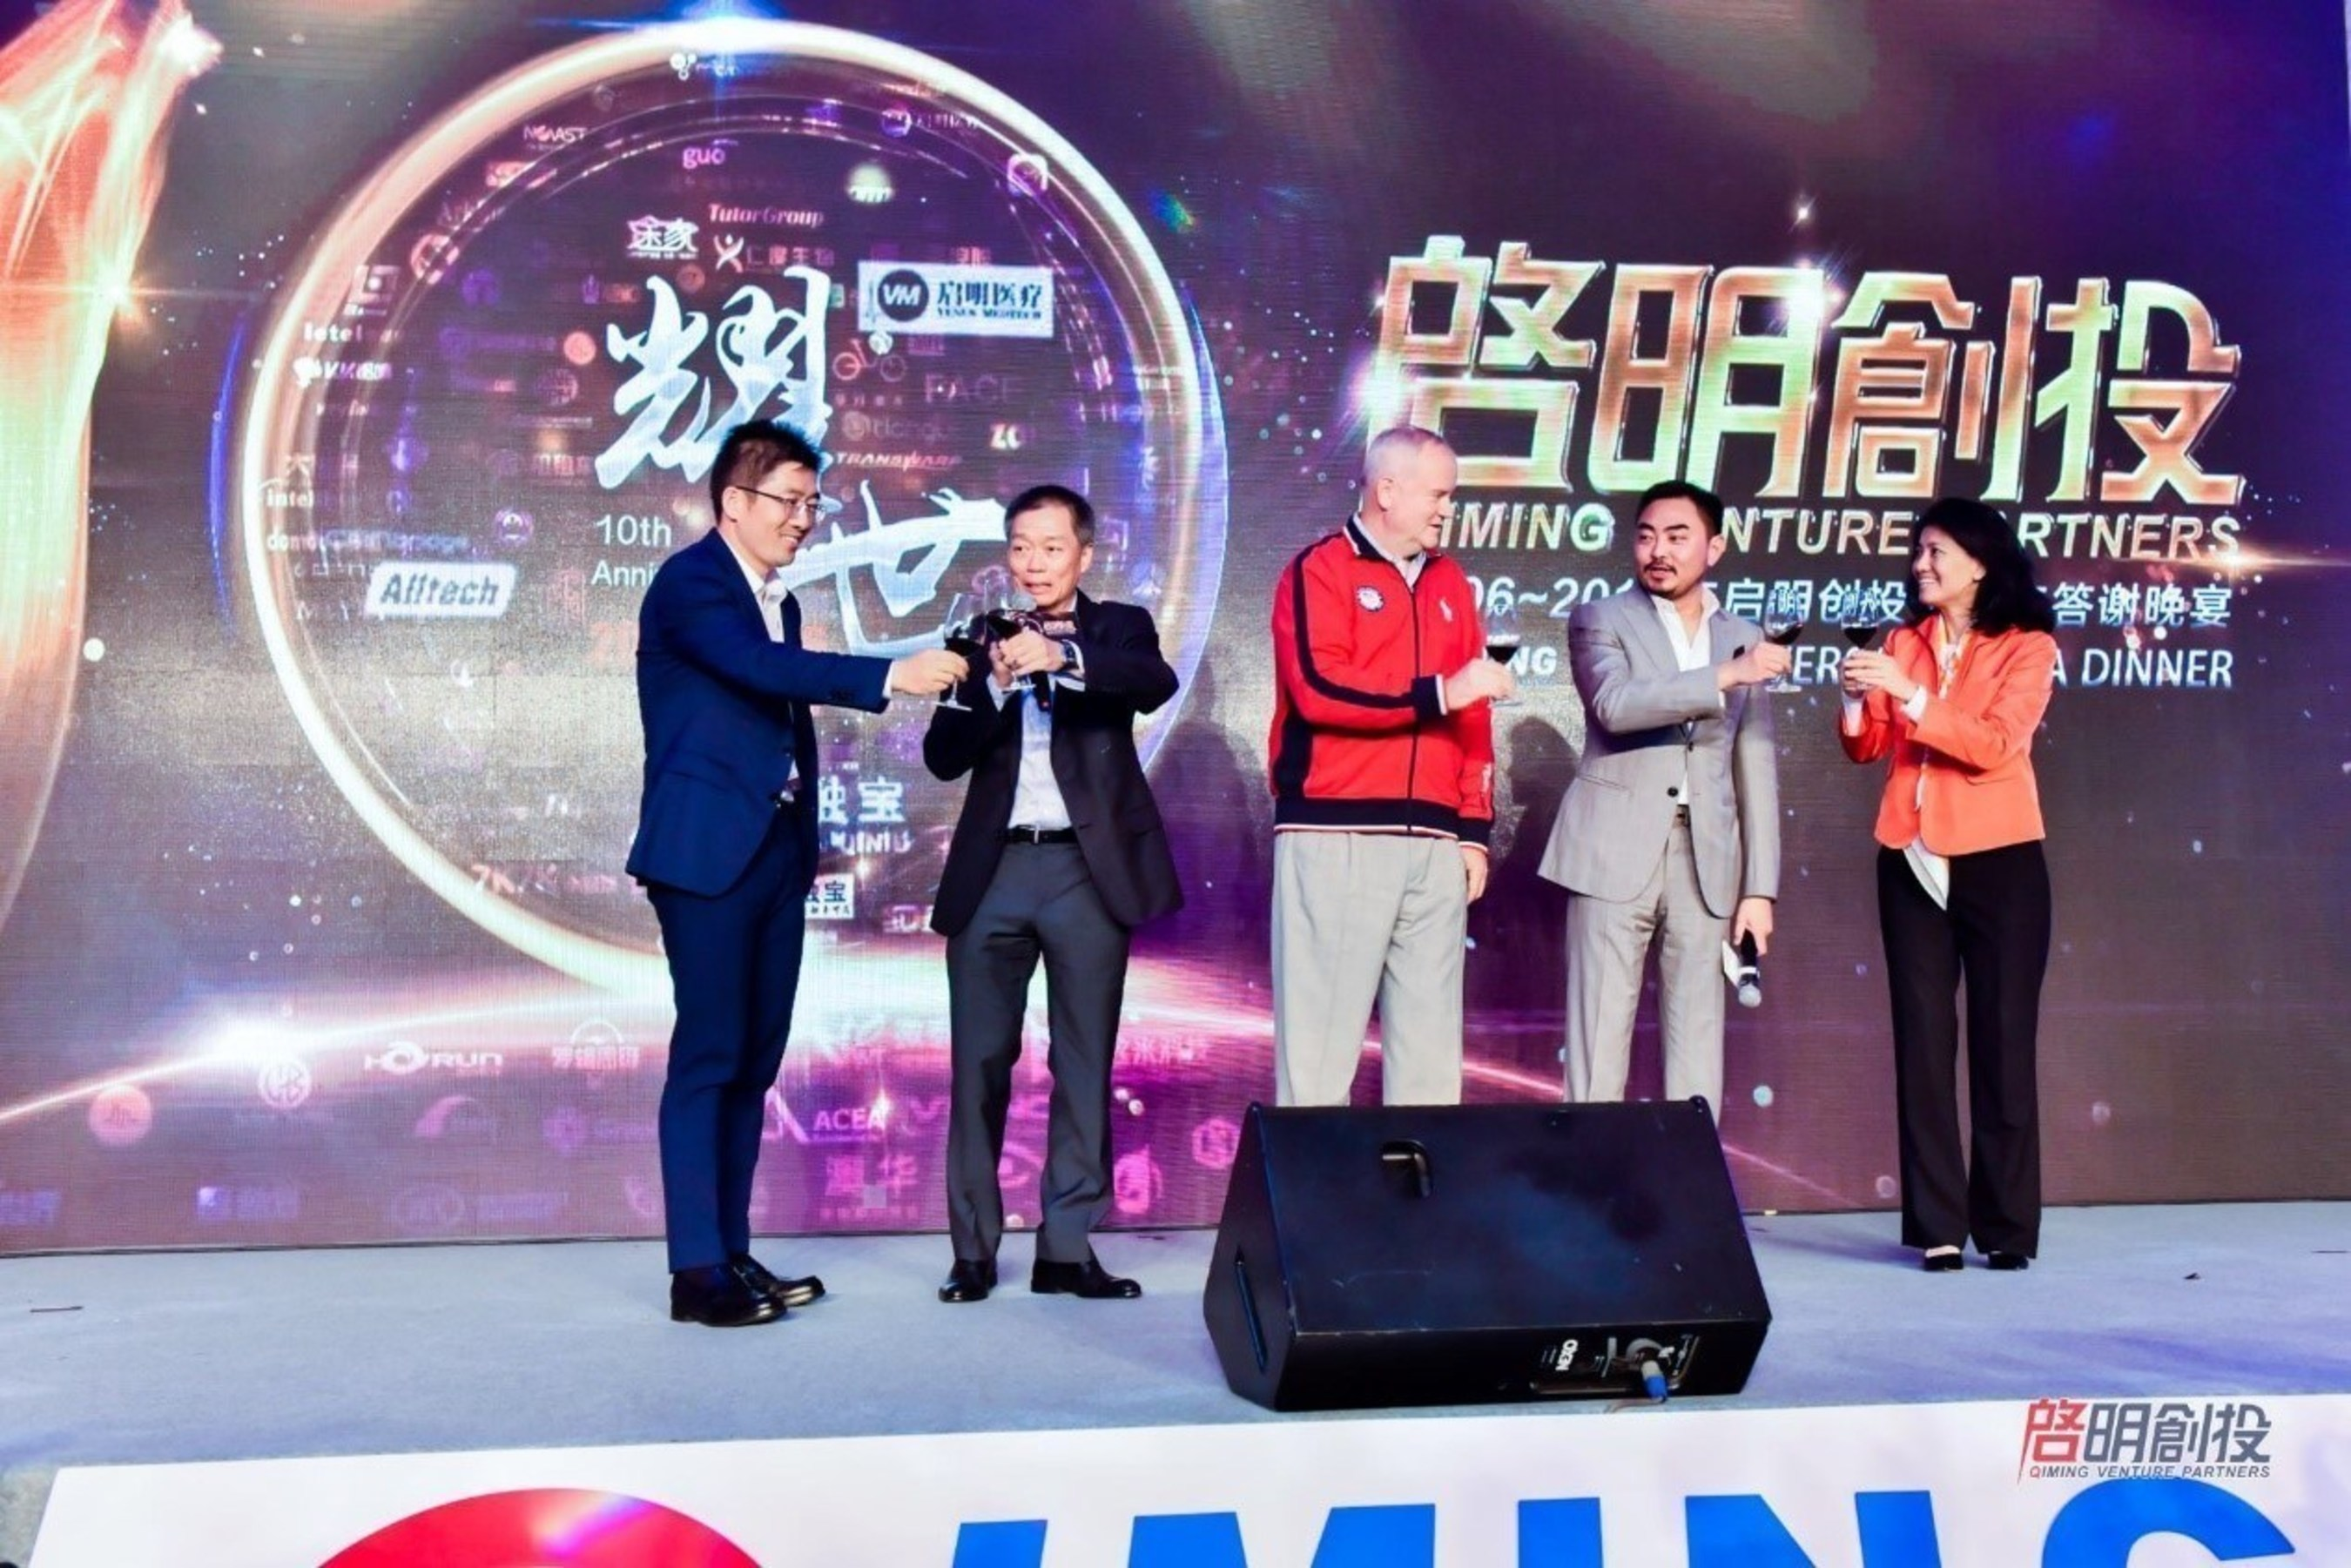 (From left to right): Qiming Managing Partner William Hu, Duane Kuang, Gary Rieschel, JP Gan and Nisa Leung held a toast on stage